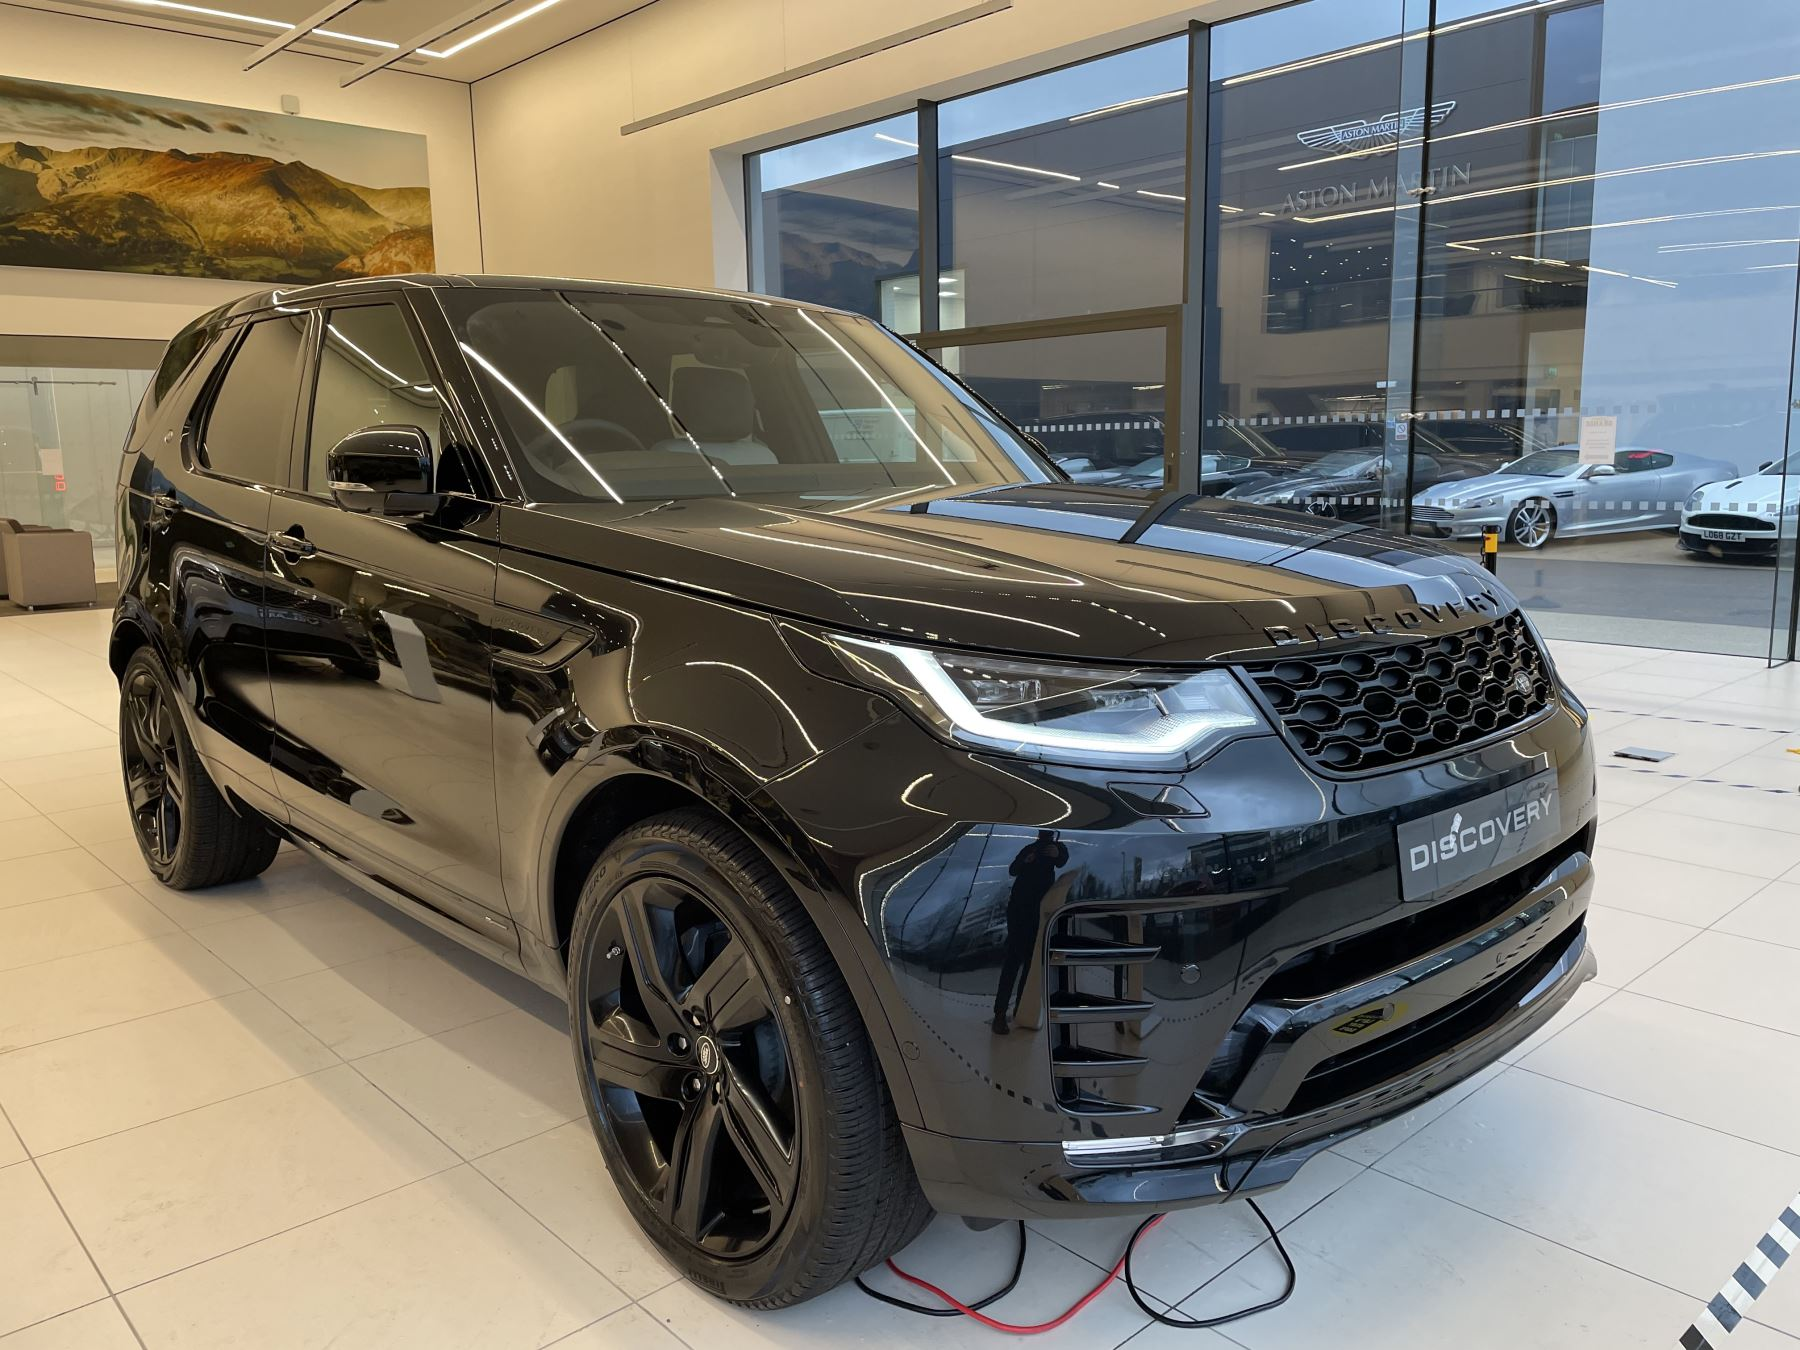 Land Rover Discovery 3.0 D300 R-Dynamic SE image 5